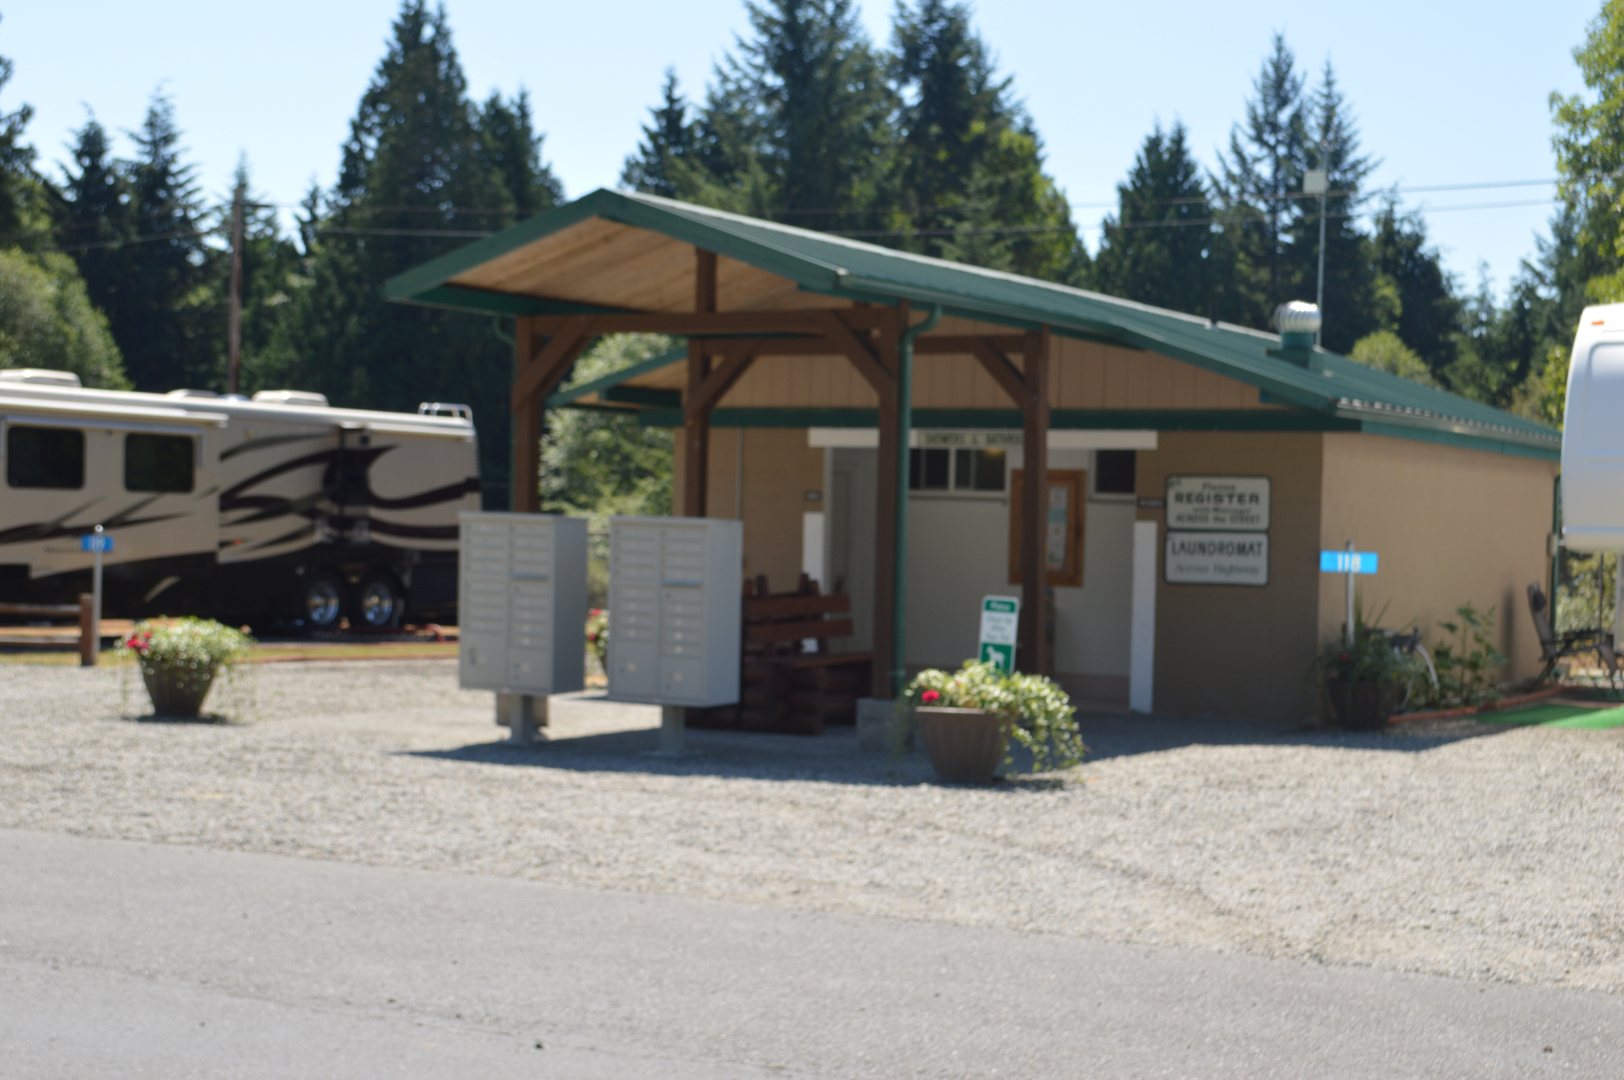 Rv Park Amenities 50 Amp Service For 30 Large Grassy Lots Postal Boxes On Site Host During Peak Season Big Rig Friendly